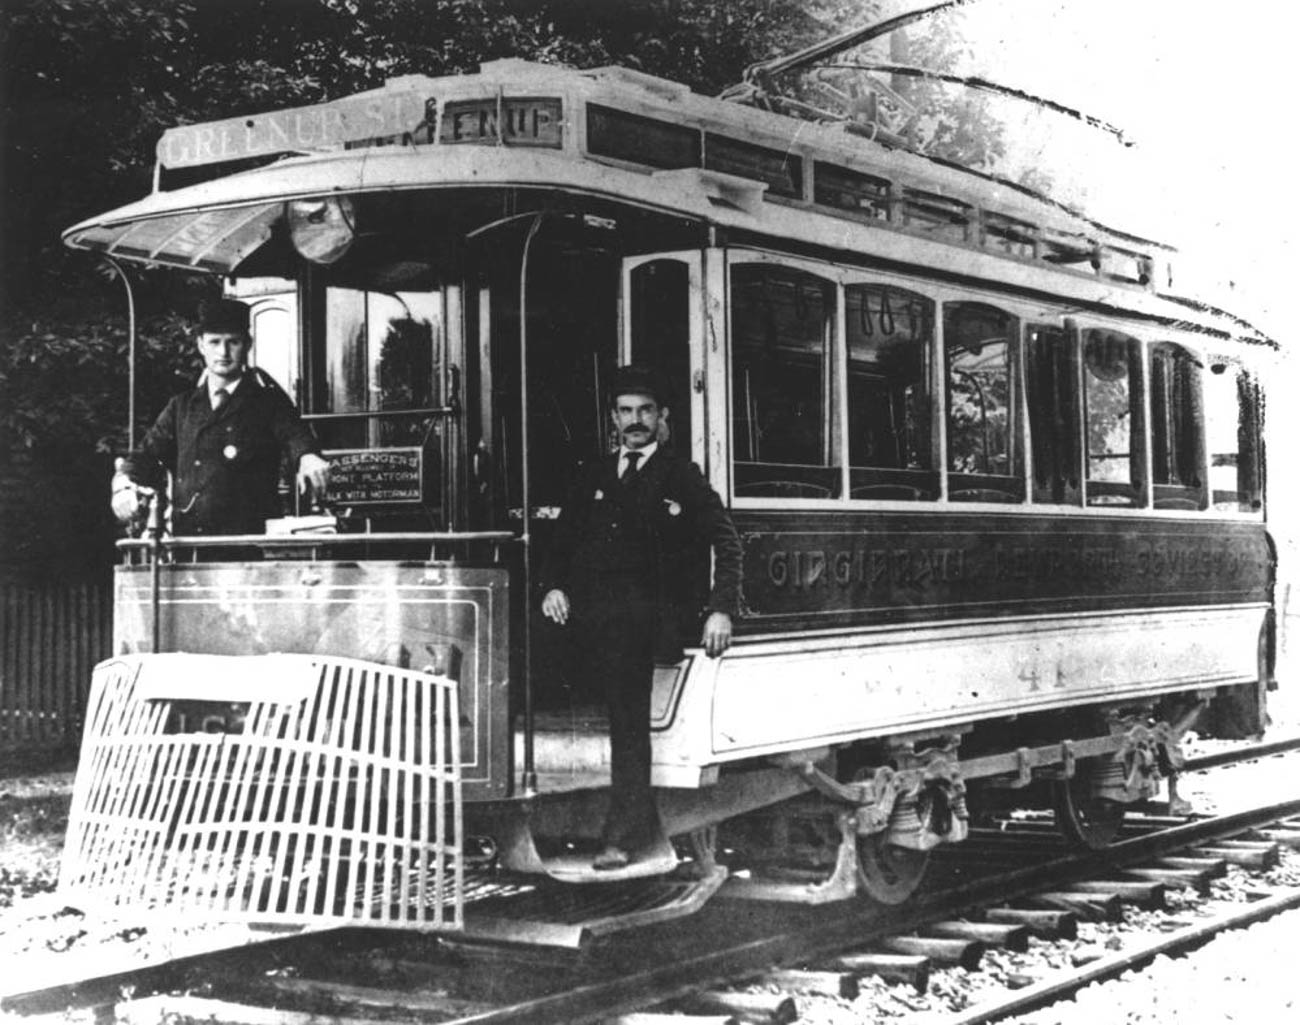 The Ludlow Lagoon was created by investors and officers in Cincinnati's Street Railway Company to spur demand and attract evening and weekend riders to the end of the #3 Ludlow Line. At the height of the park's popularity, streetcars packed with passengers departed Fountain Square every two minutes en route to Ludlow Lagoon. Pictured is members of the Green Line Trolley Company on Greenup Street in Covington in 1895. / Image courtesy of the Kenton County Public Library via The Greater Cincinnati Memory Project of{&nbsp;}The Public Library of Cincinnati and Hamilton County // Published: 6.5.19<br>